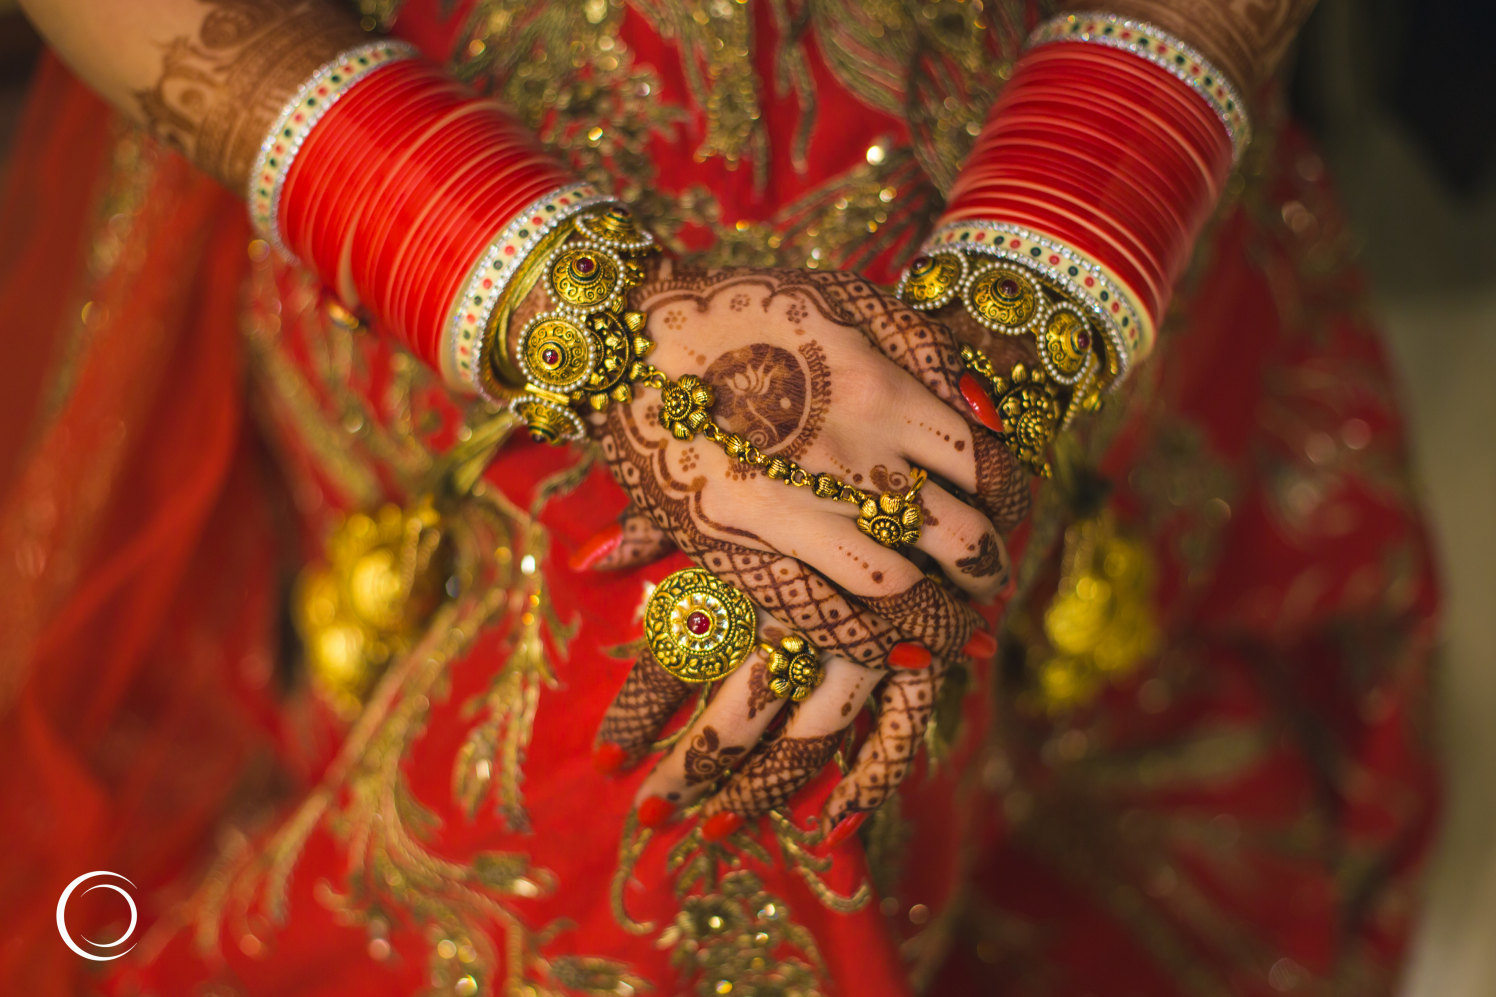 Hands Embellished With Jewelry And Henna! by Amish Photography Wedding-photography | Weddings Photos & Ideas